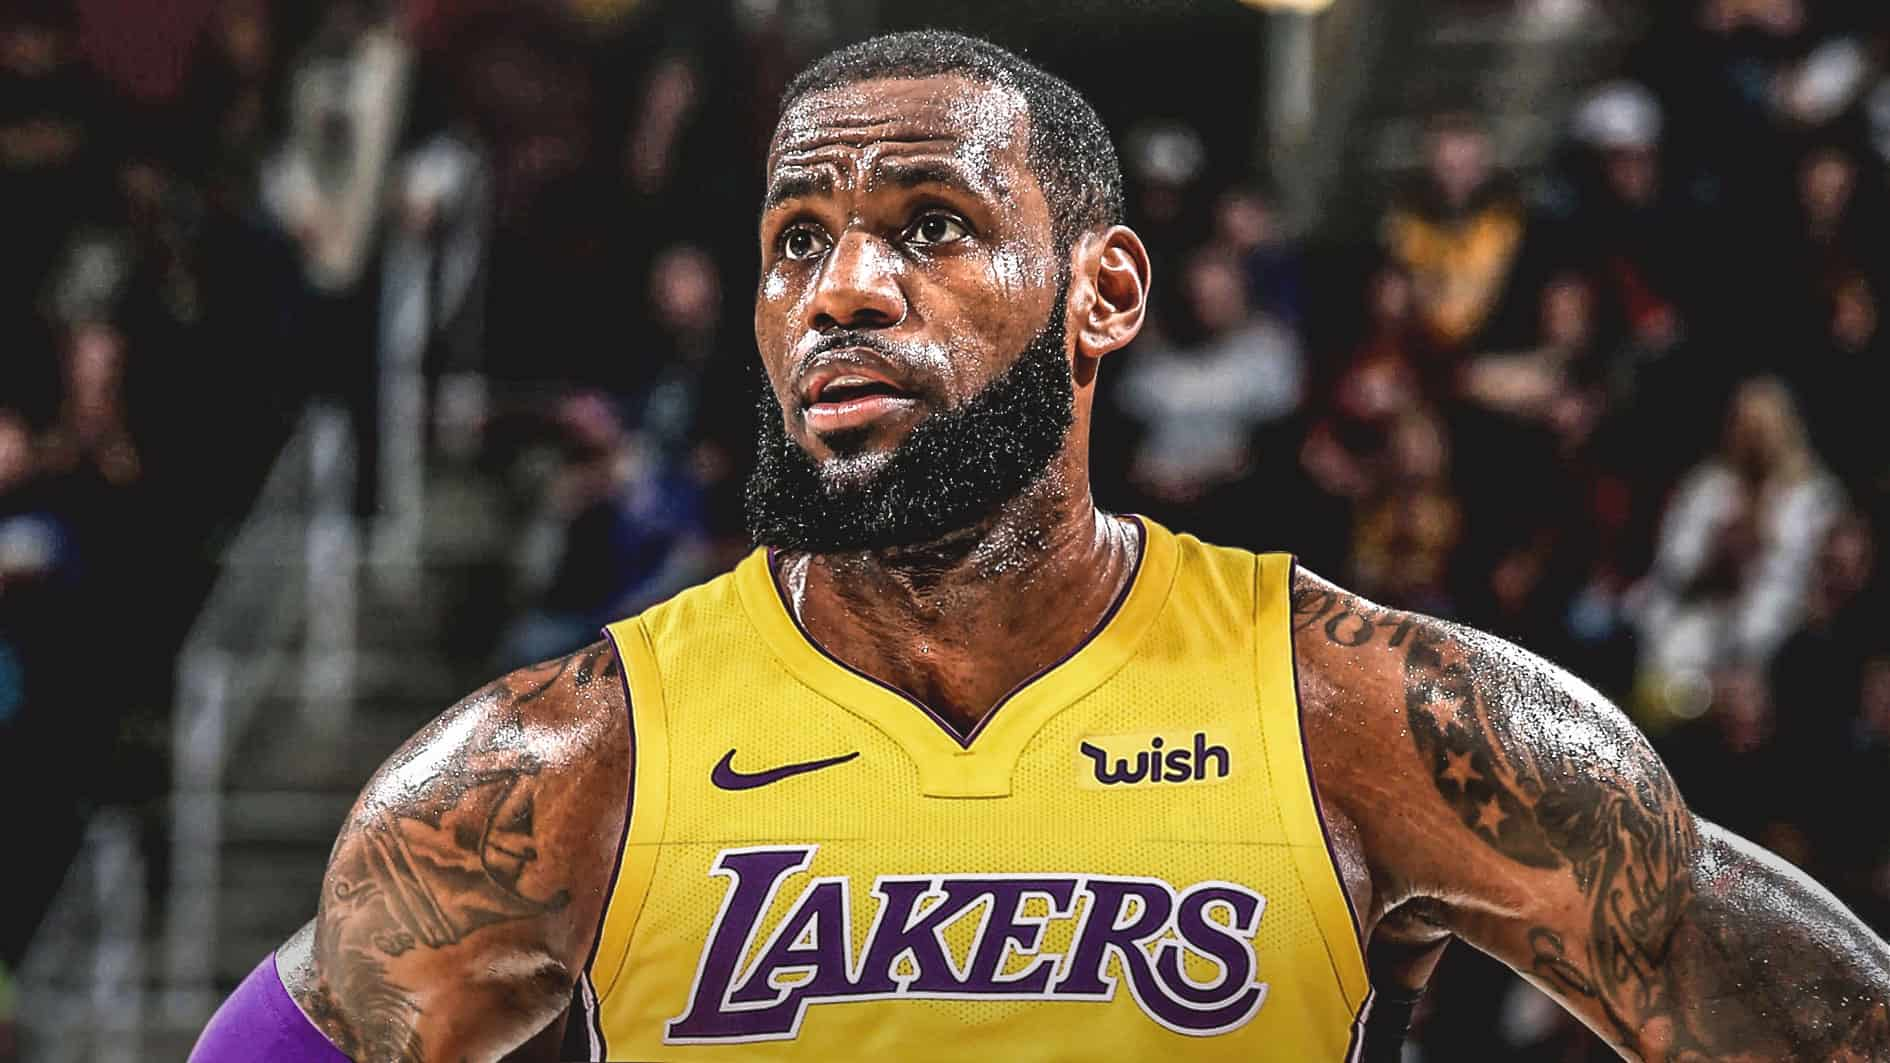 Lakers tickets skyrocket by thousands after LeBron James agrees to sign with team